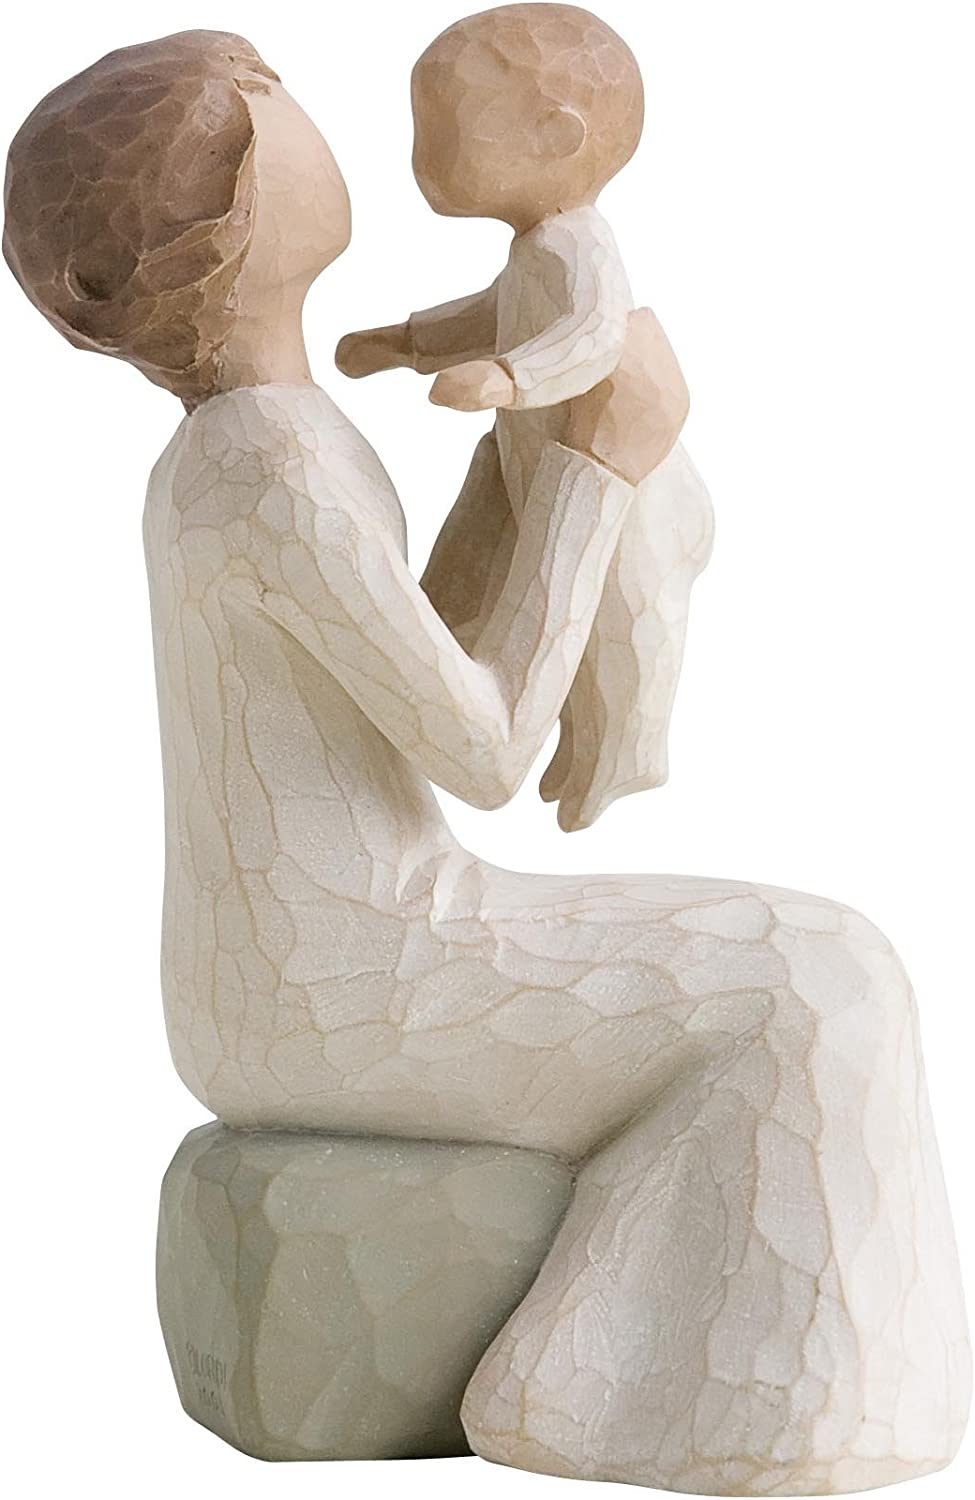 B000XTFZNA Willow Tree Grandmother, sculpted hand-painted figure 71XcZsN5Z8L